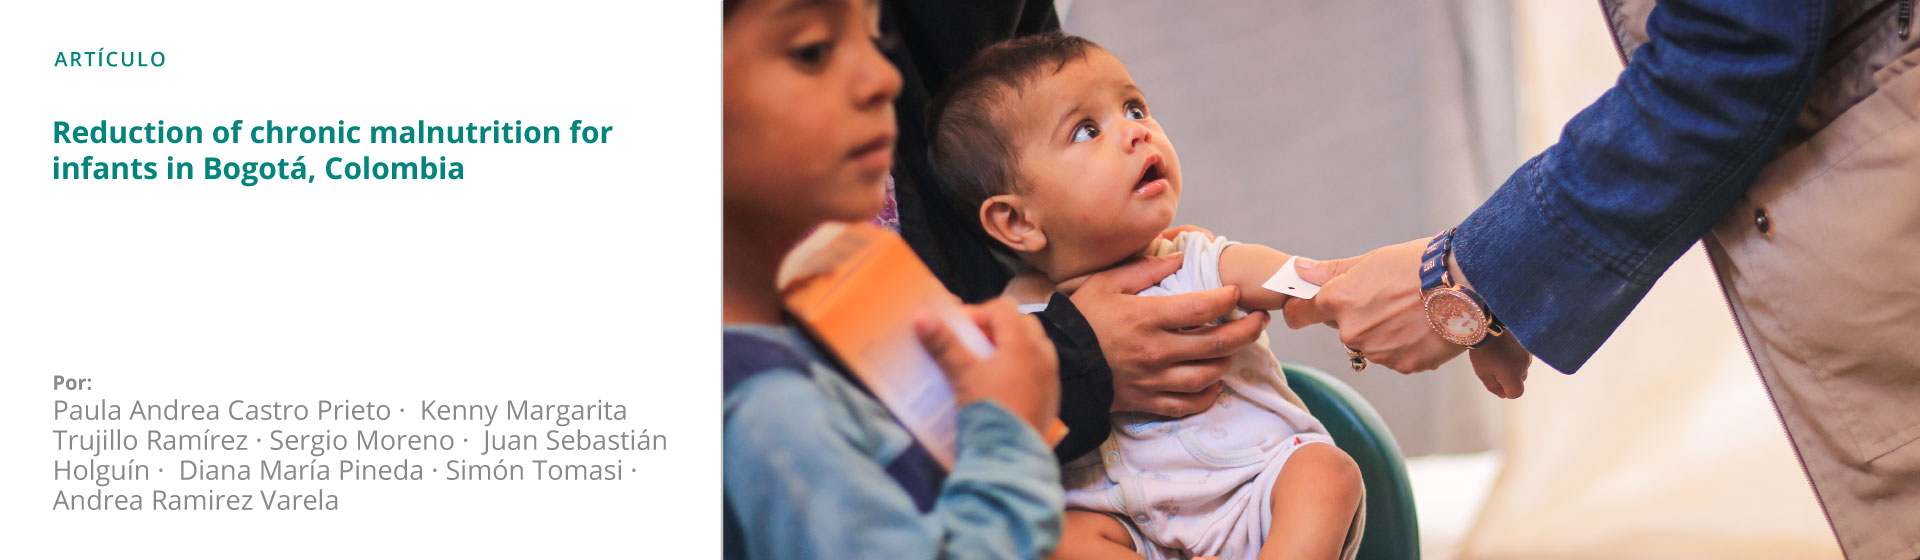 Reduction of chronic malnutrition for infants in Bogotá, Colombia